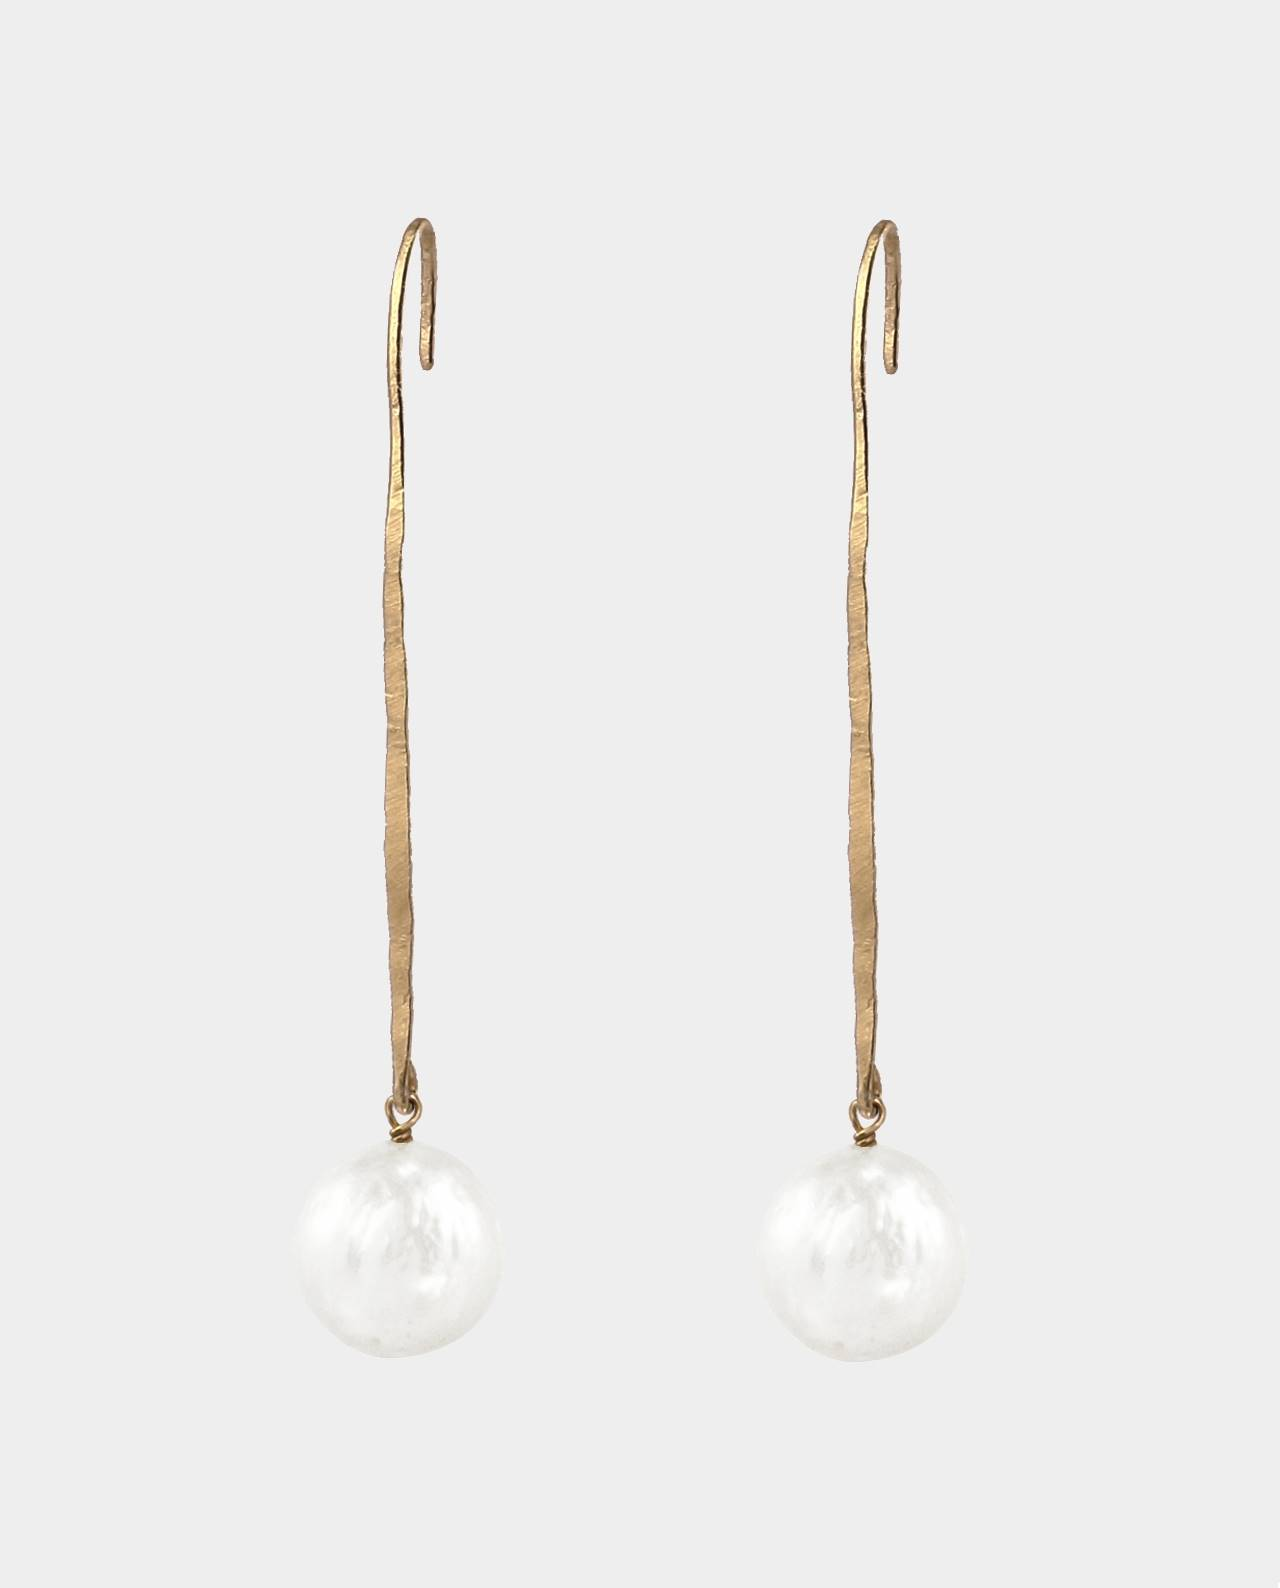 Original jewelry art in the shape of long hammered earstuds with round white pearls inspired by the jewelers of antiquity